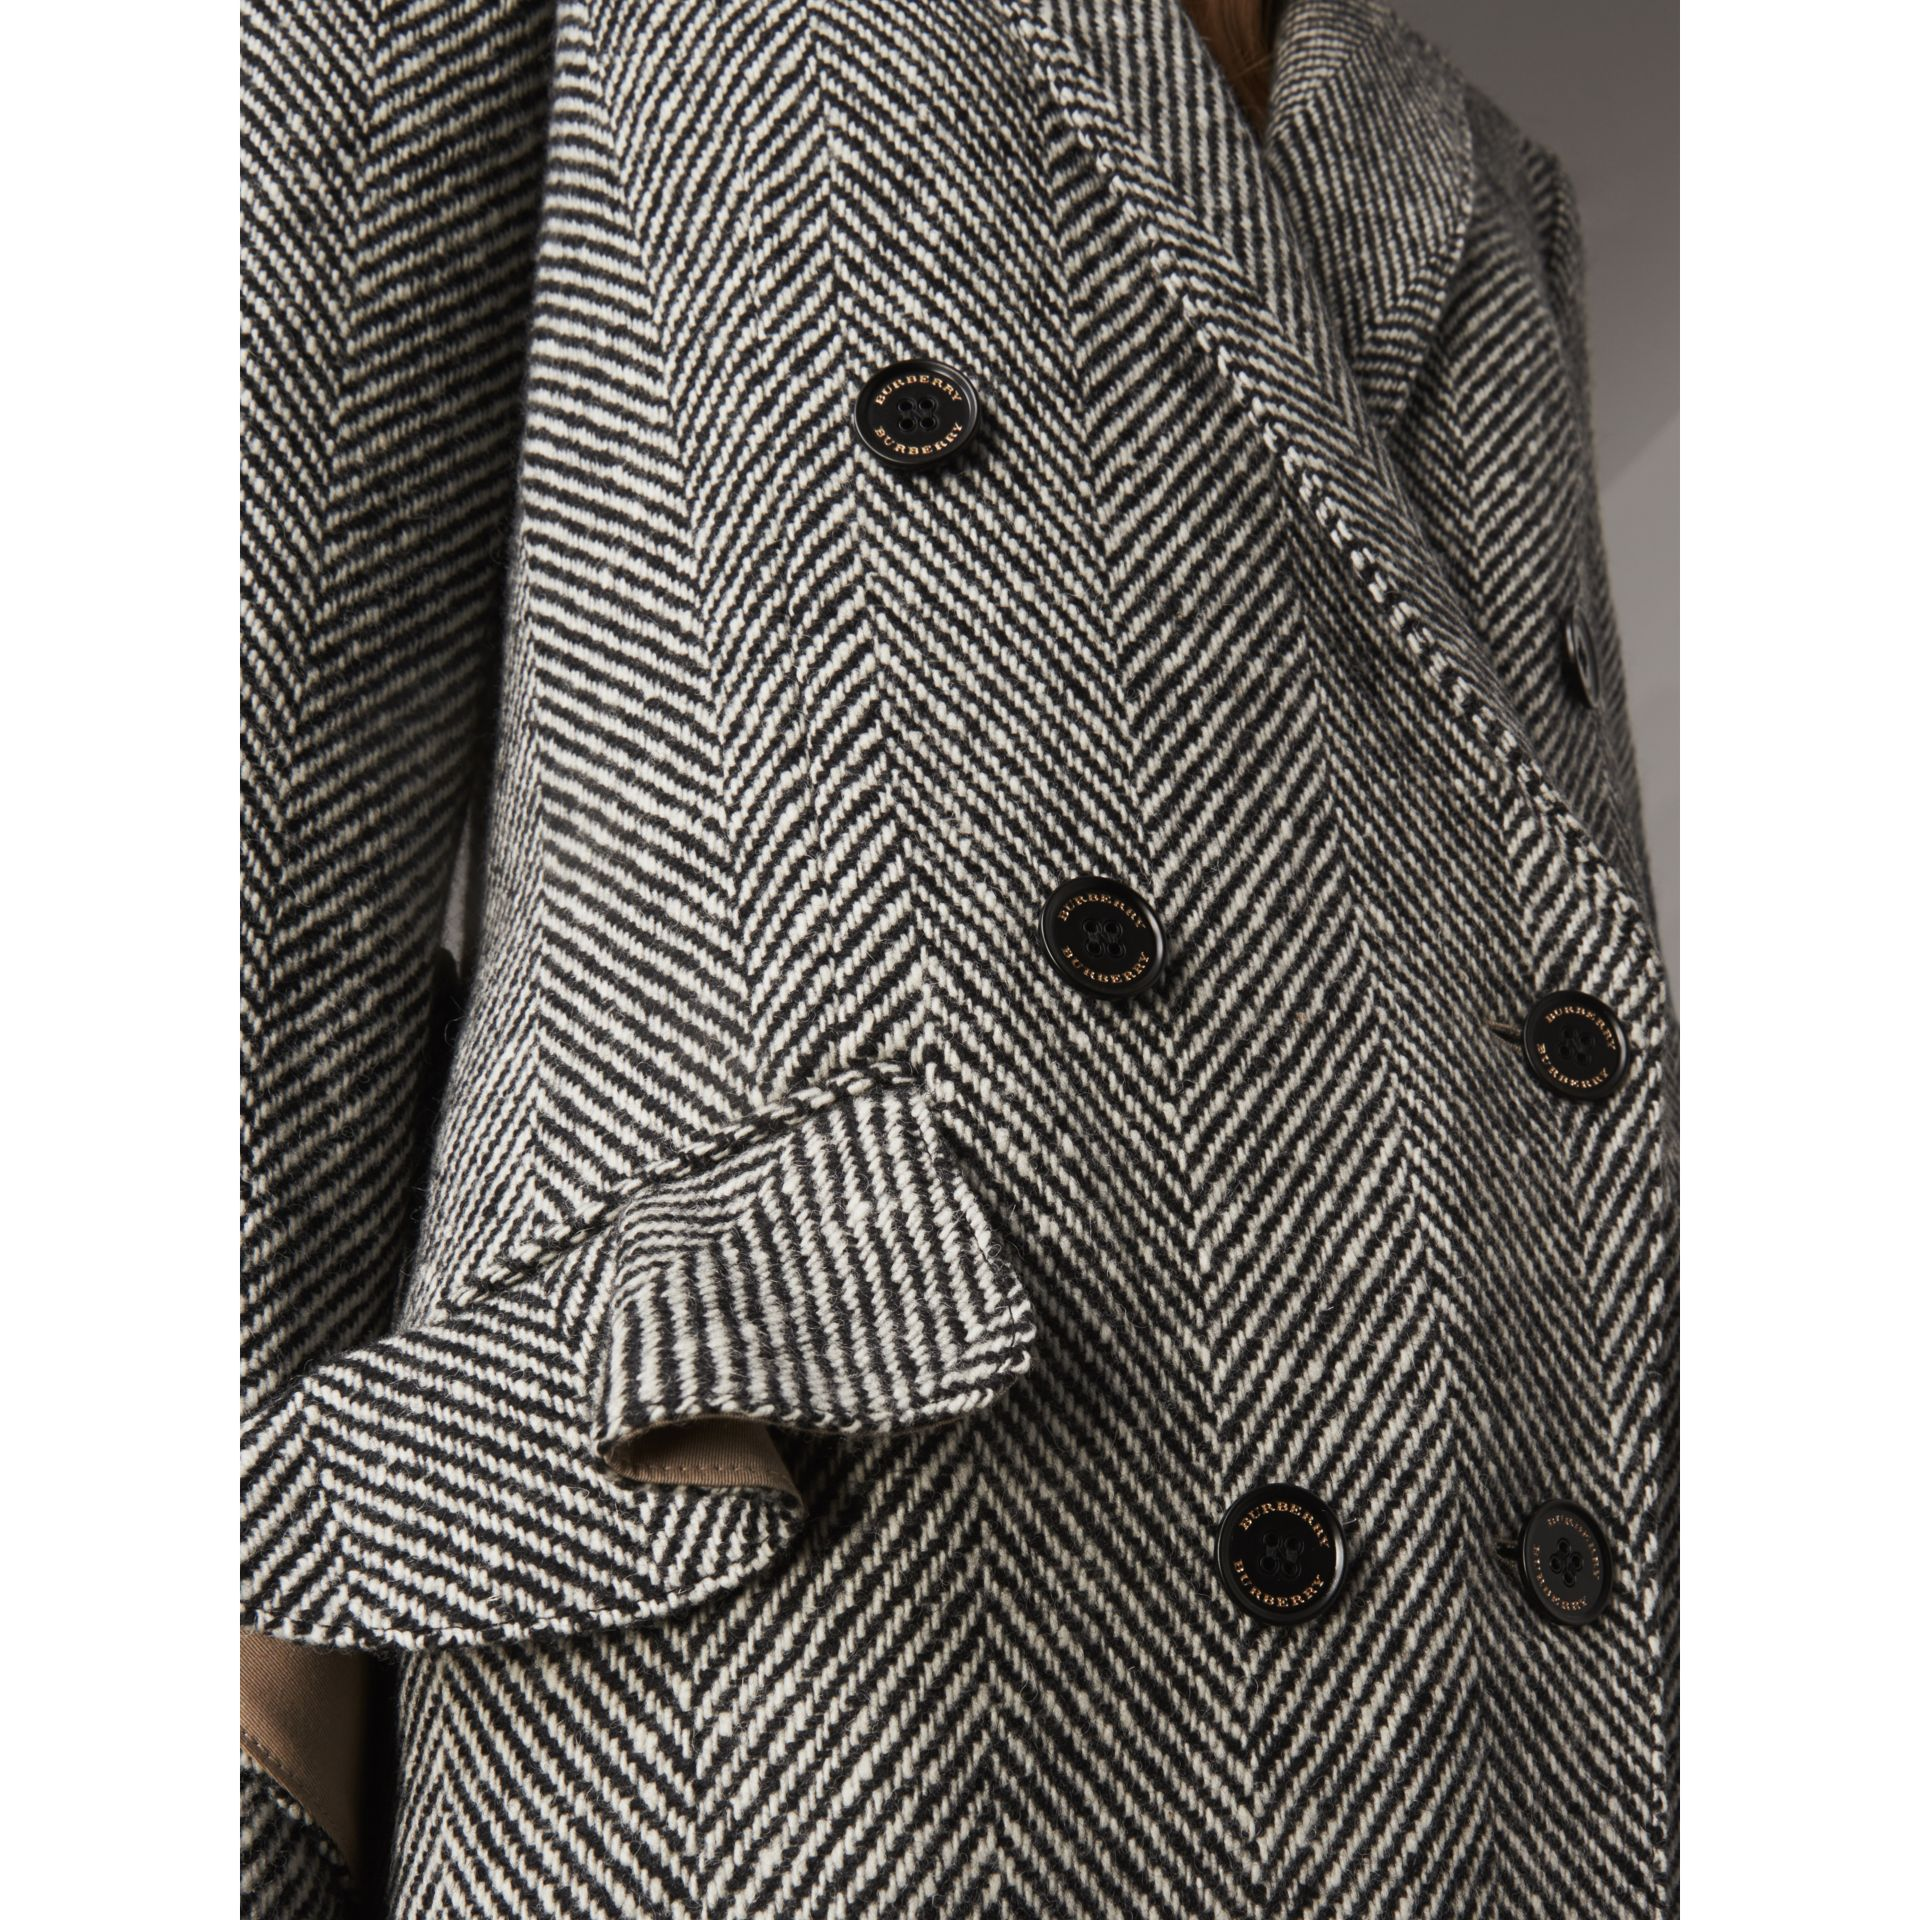 Donegal Herringbone Wool Tweed Tailored Coat in Black - Women | Burberry Singapore - gallery image 5